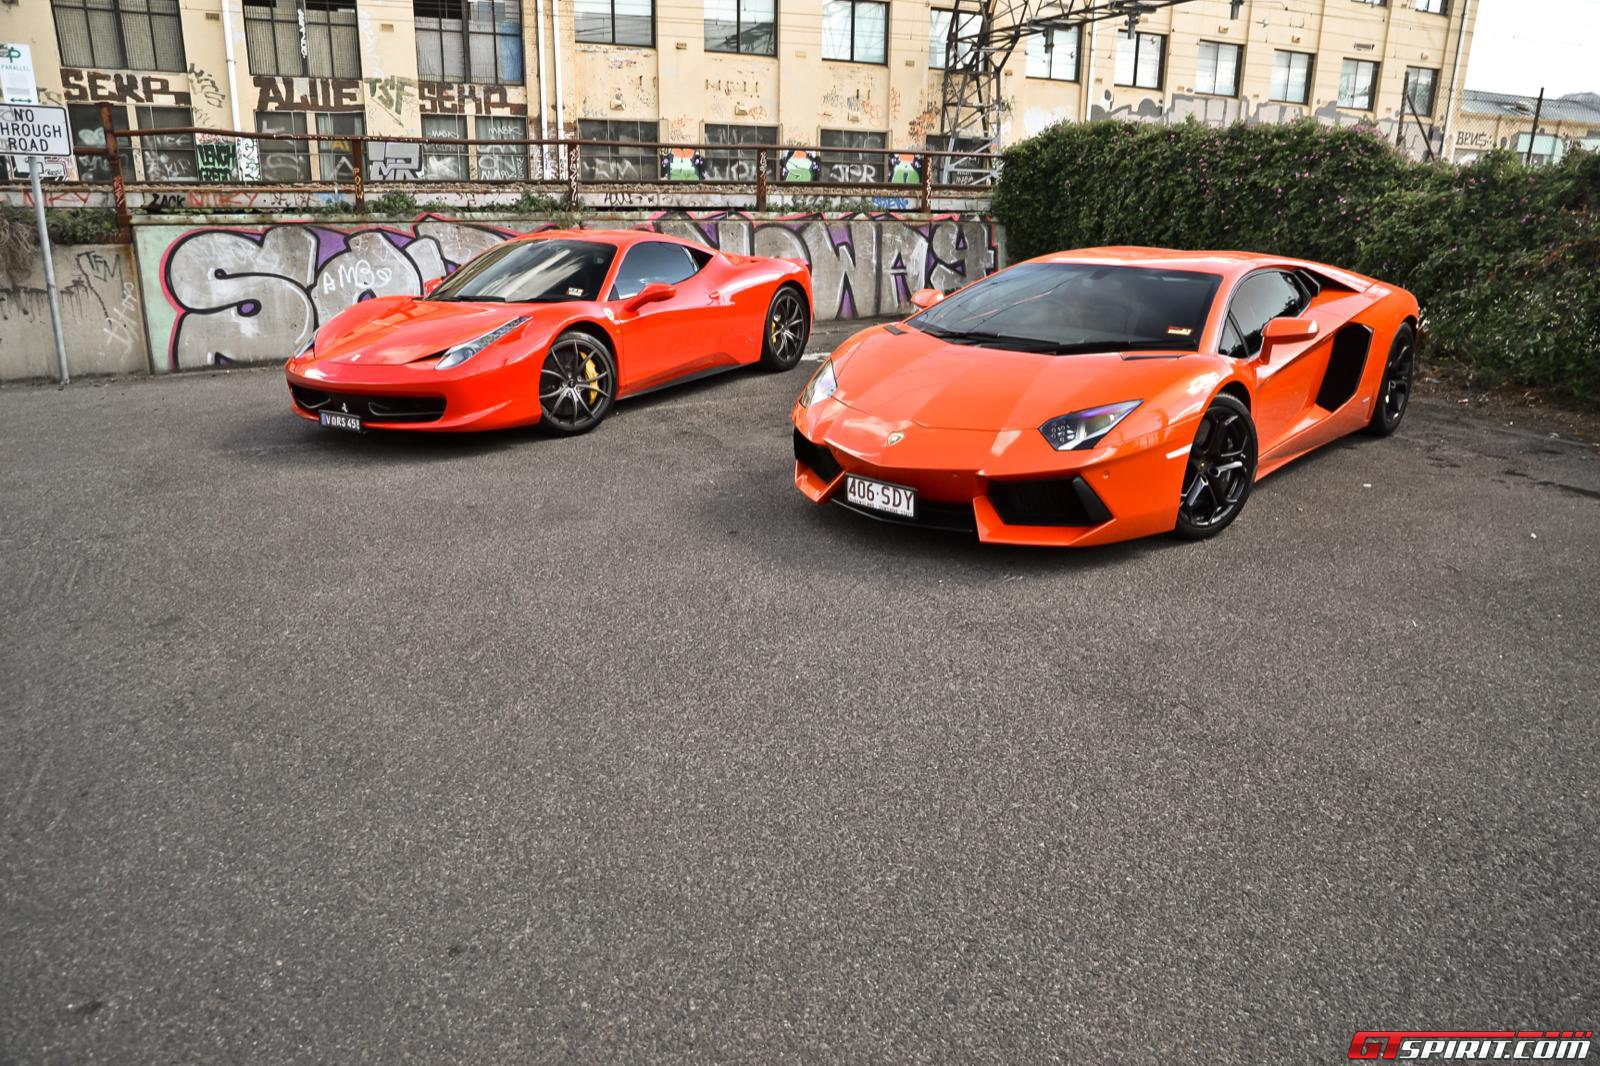 ferrari 458 vs lamborghini aventador. Black Bedroom Furniture Sets. Home Design Ideas